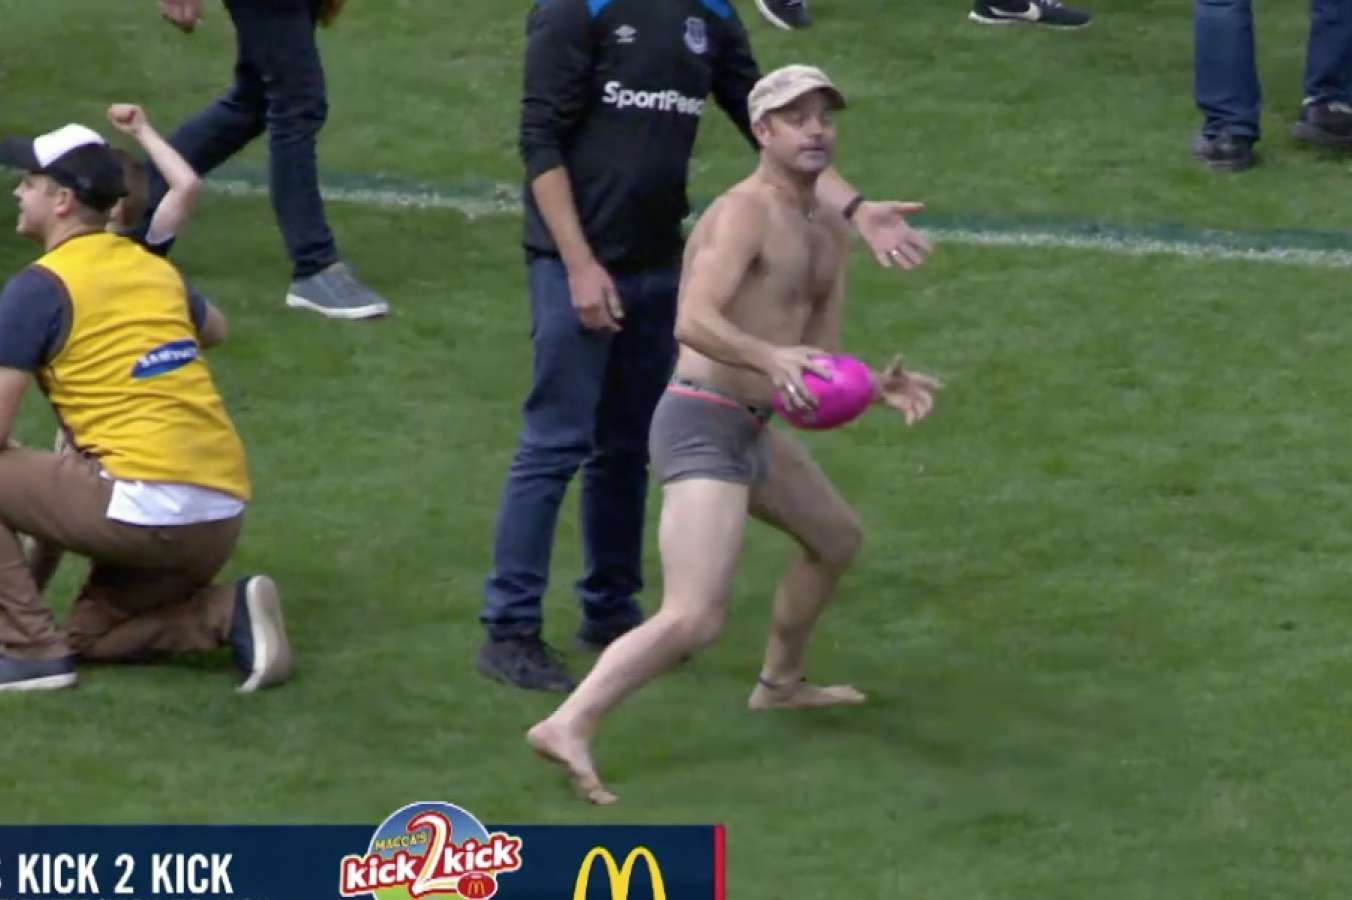 Bloke gets booted off Etihad for playing kick-to-kick in his undies